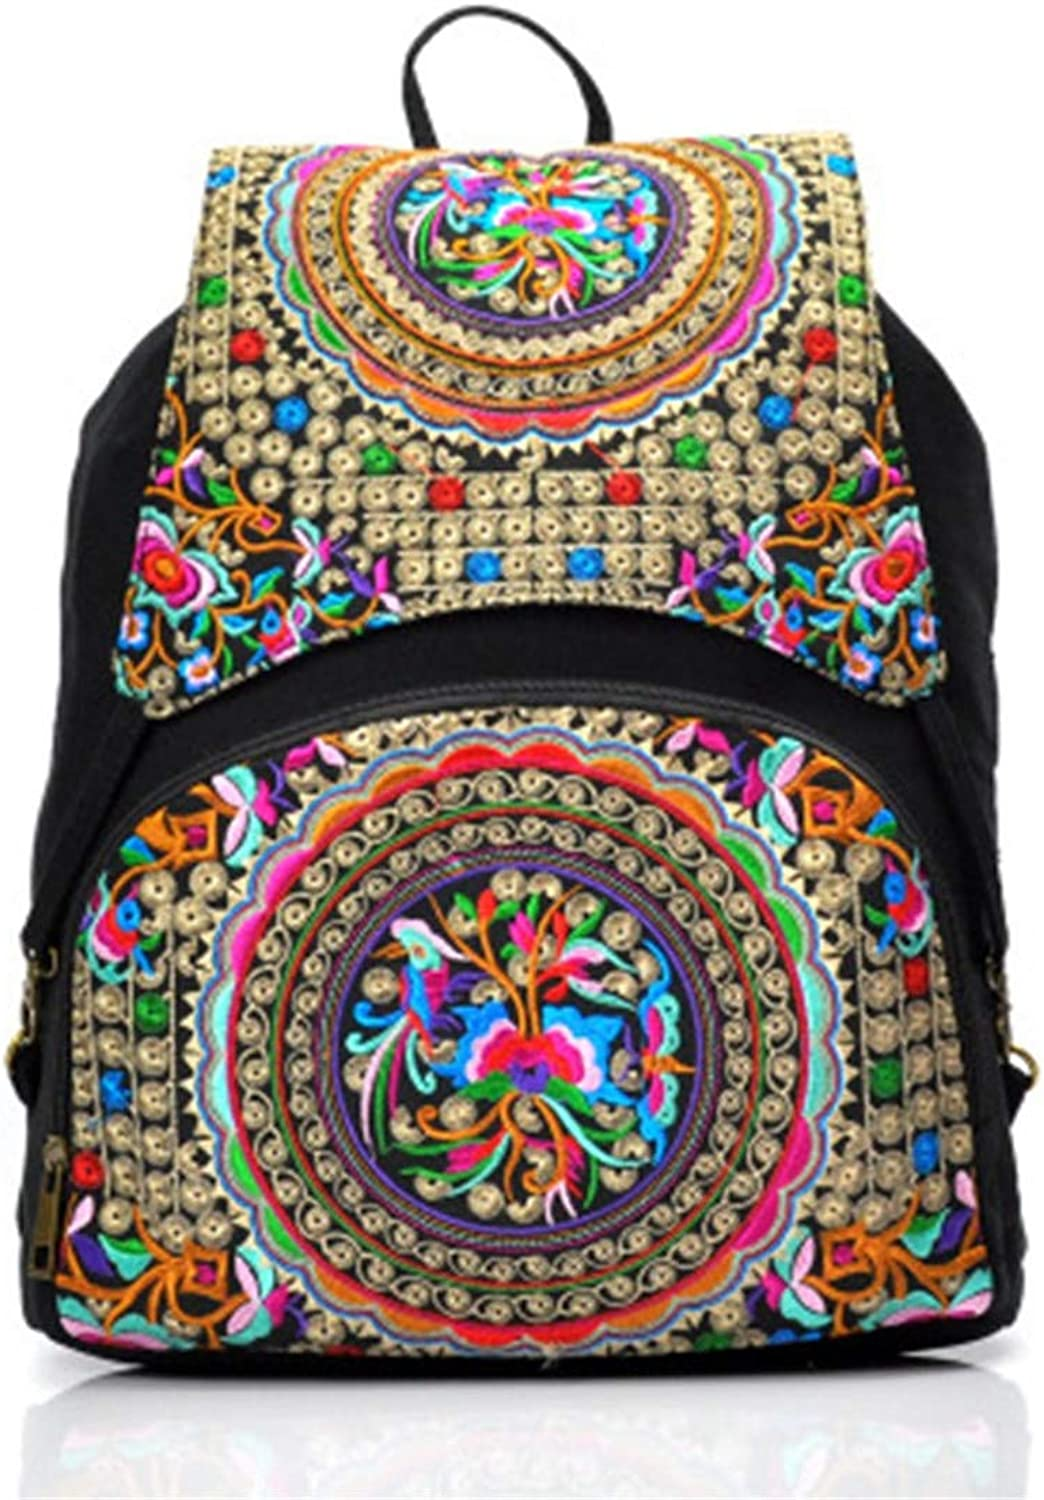 New National Wind Shoulder Bag Wholesale National Embroidery Bag Shoulder Bag Embroidered Backpack gz-40-2456